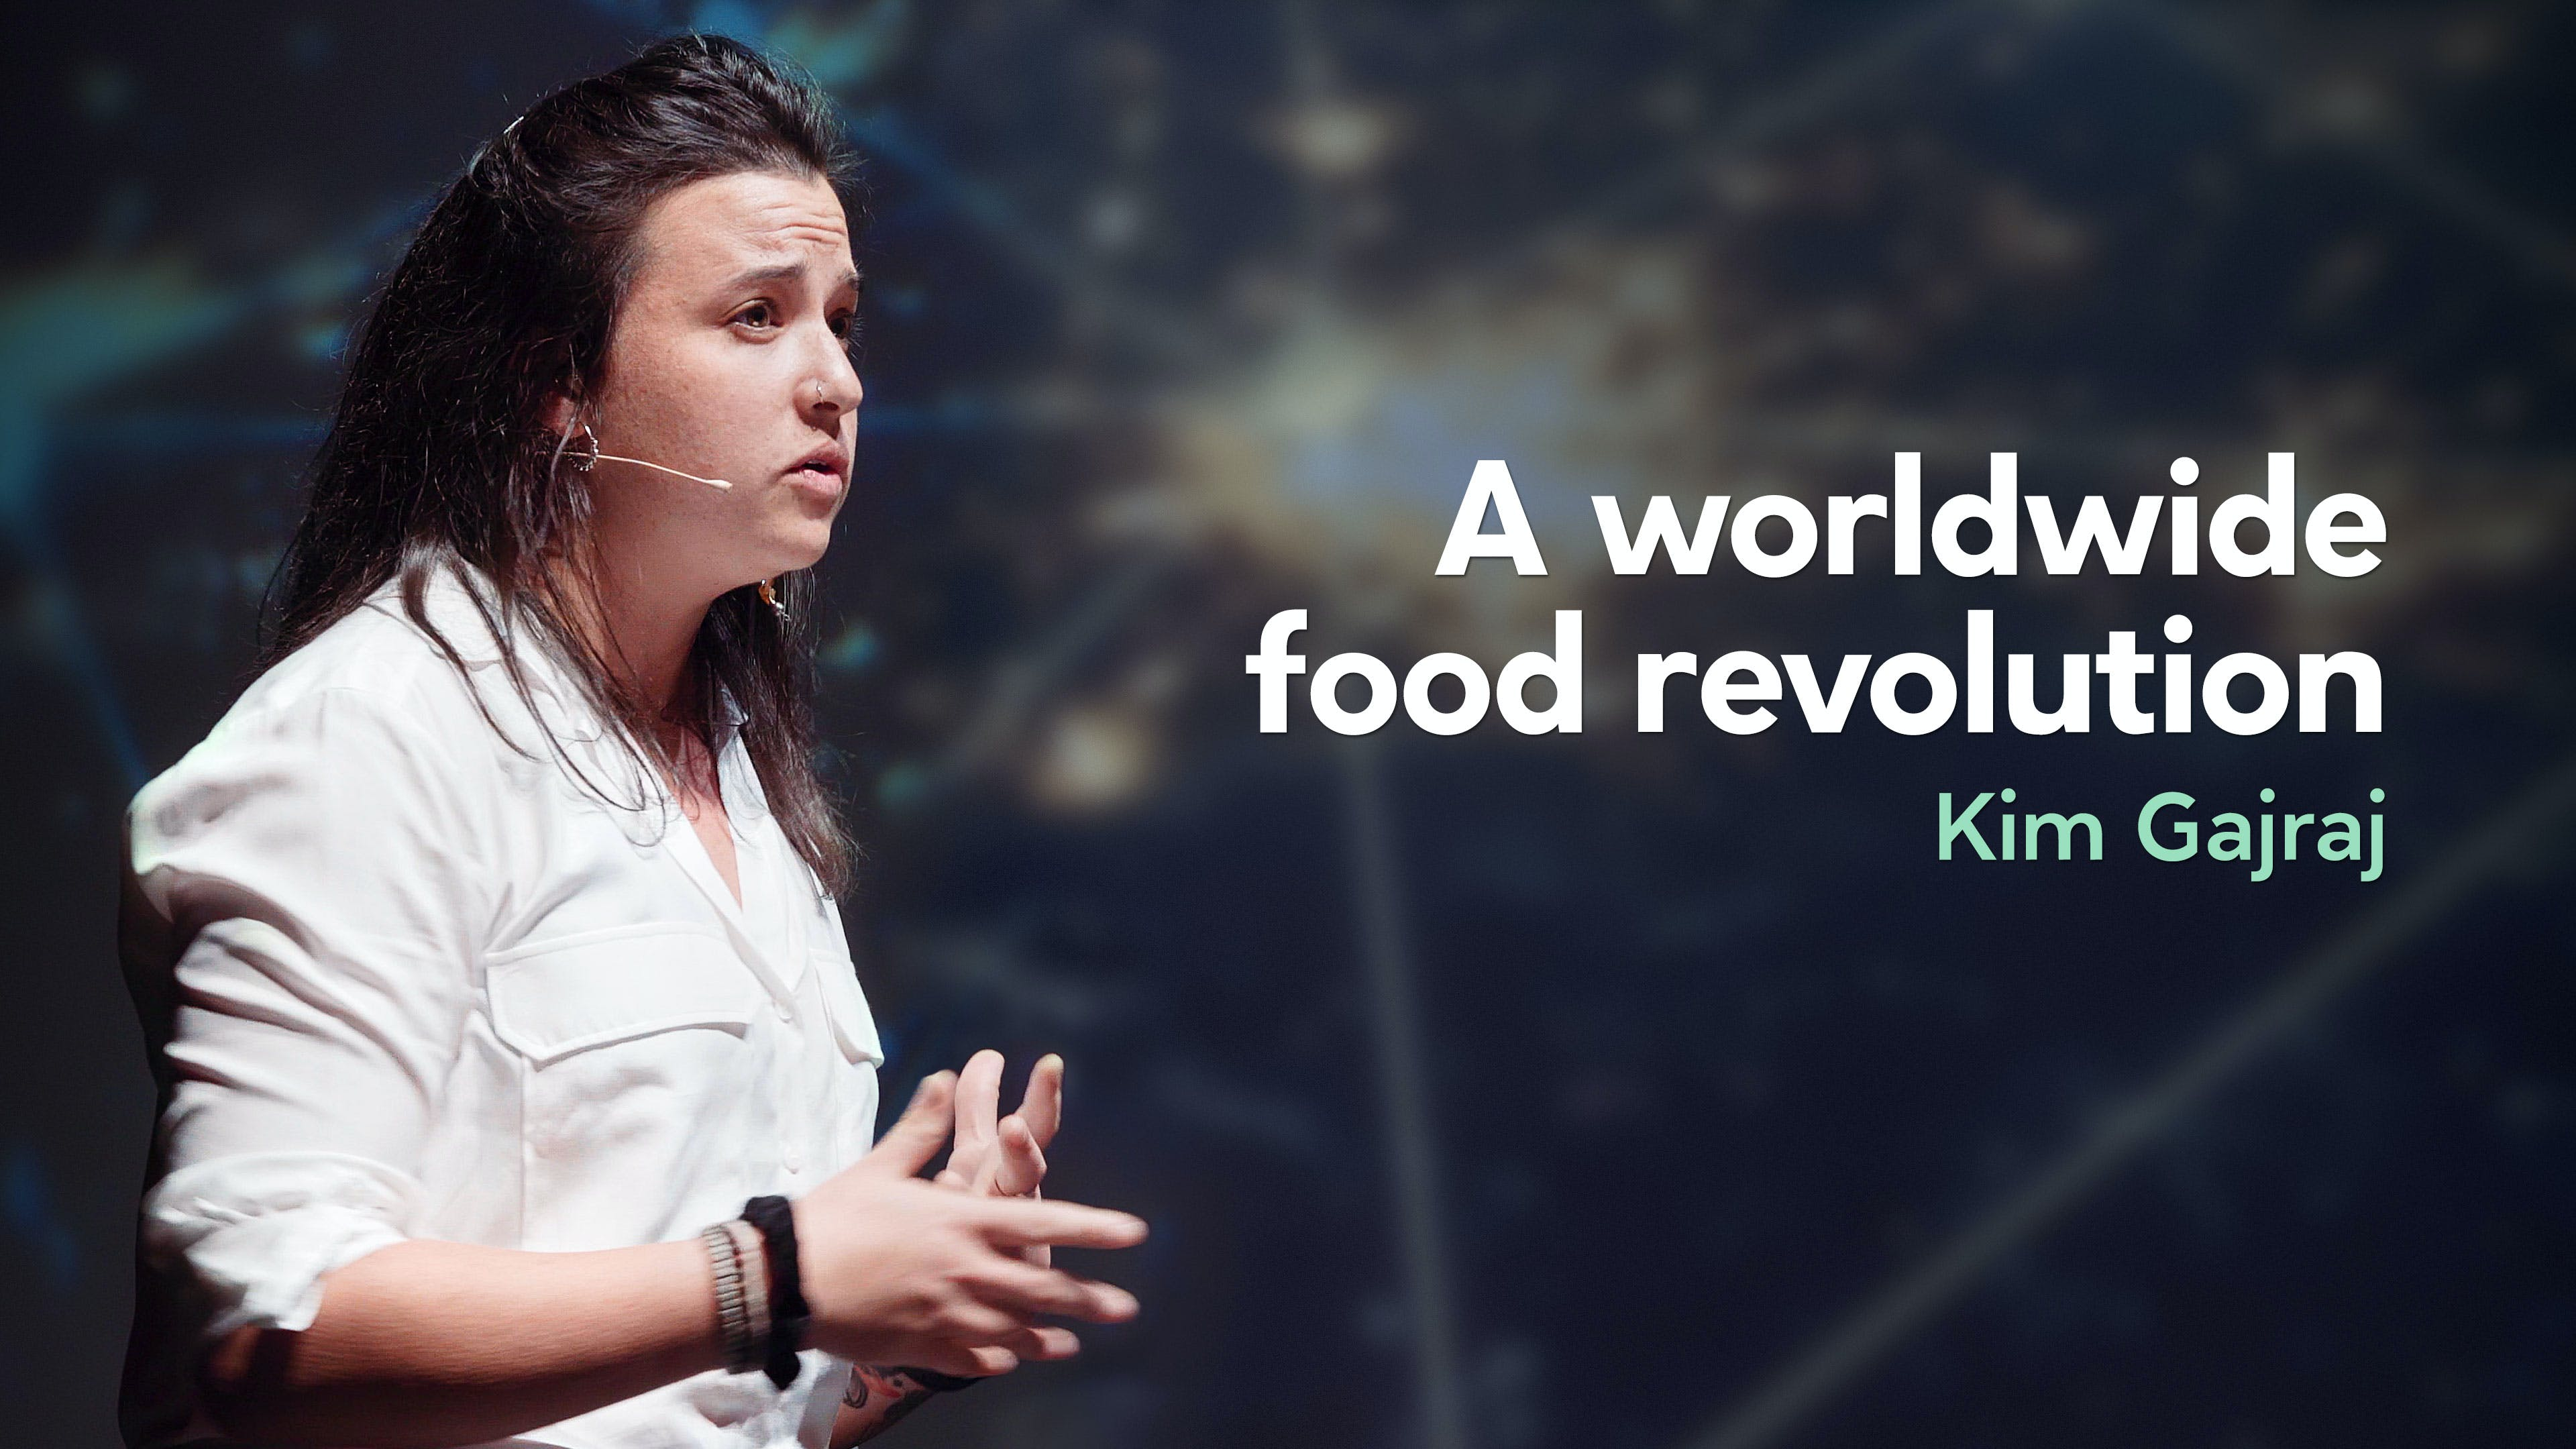 A worldwide food revolution – Kim Gajraj